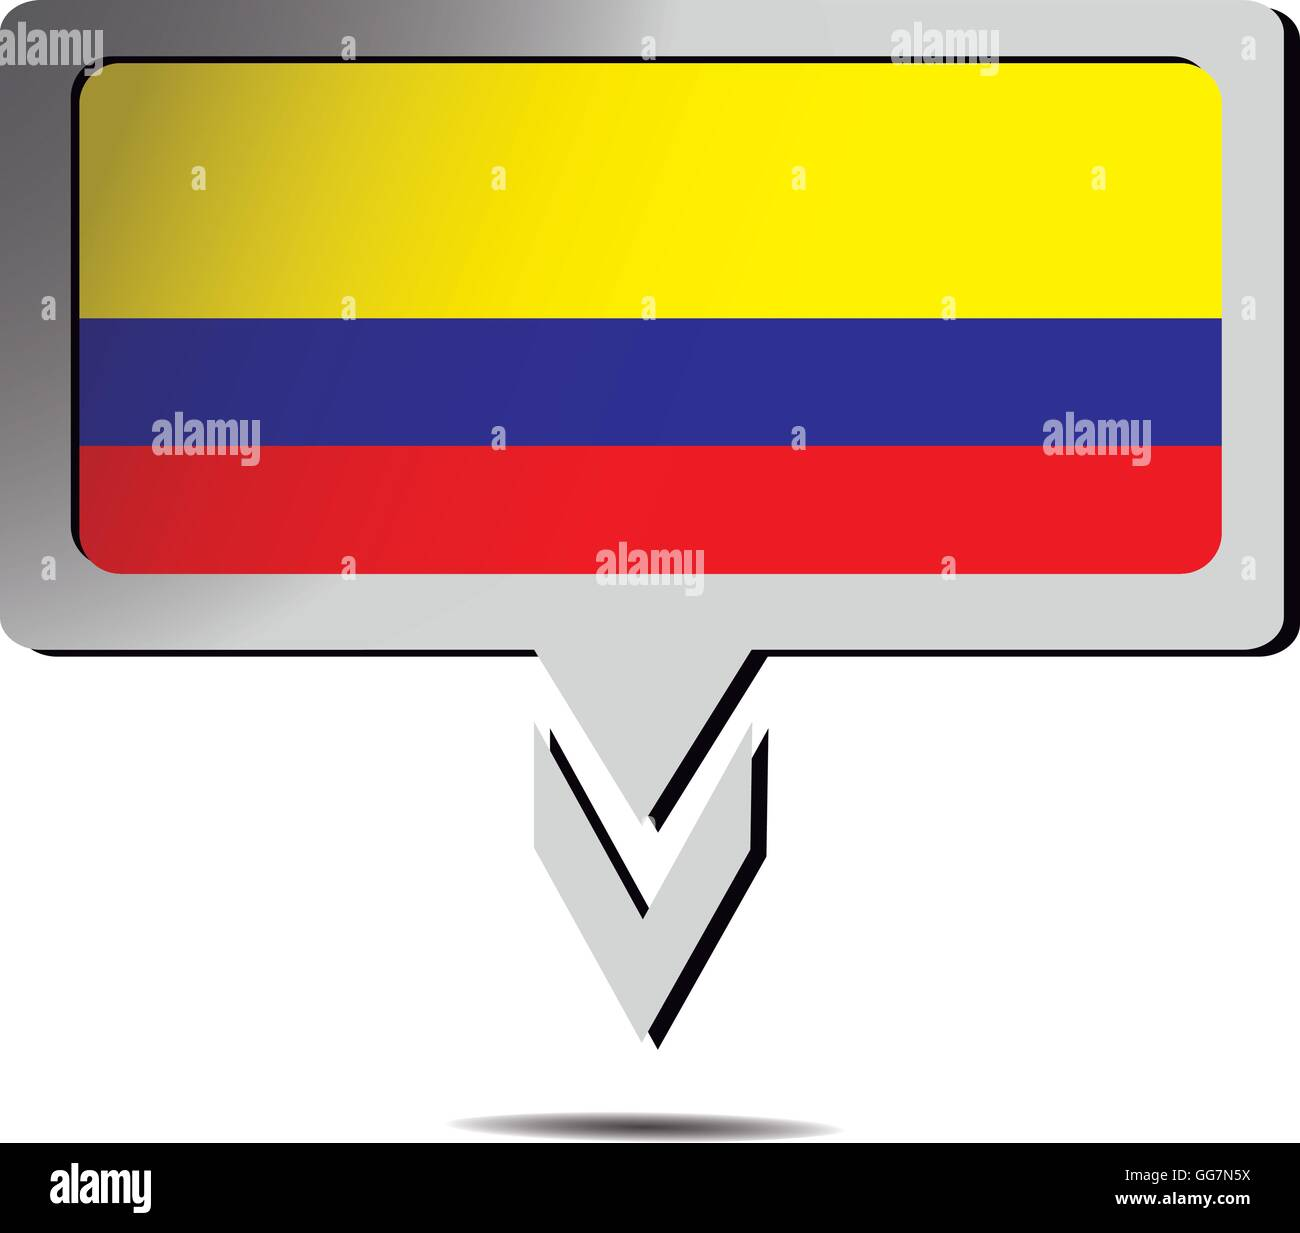 National Symbols Flag Colombia Stock Vector Images Alamy